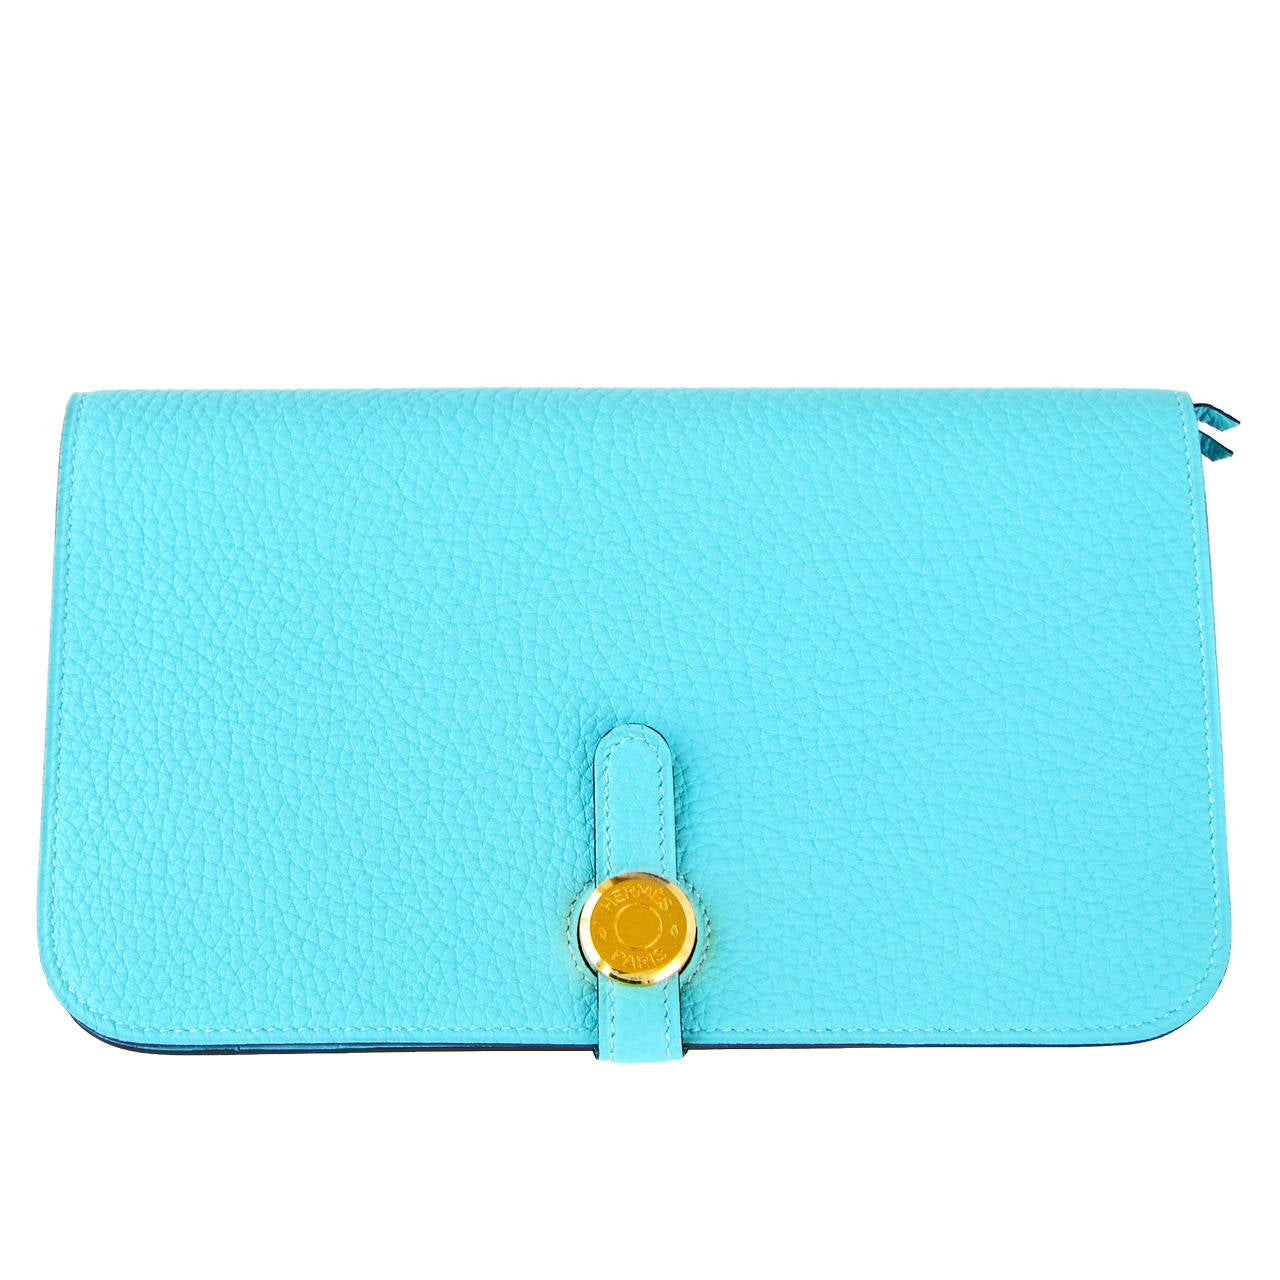 Hermes Blue Atoll Gold Hardware Togo Dogon Duo Leather Wallet ...